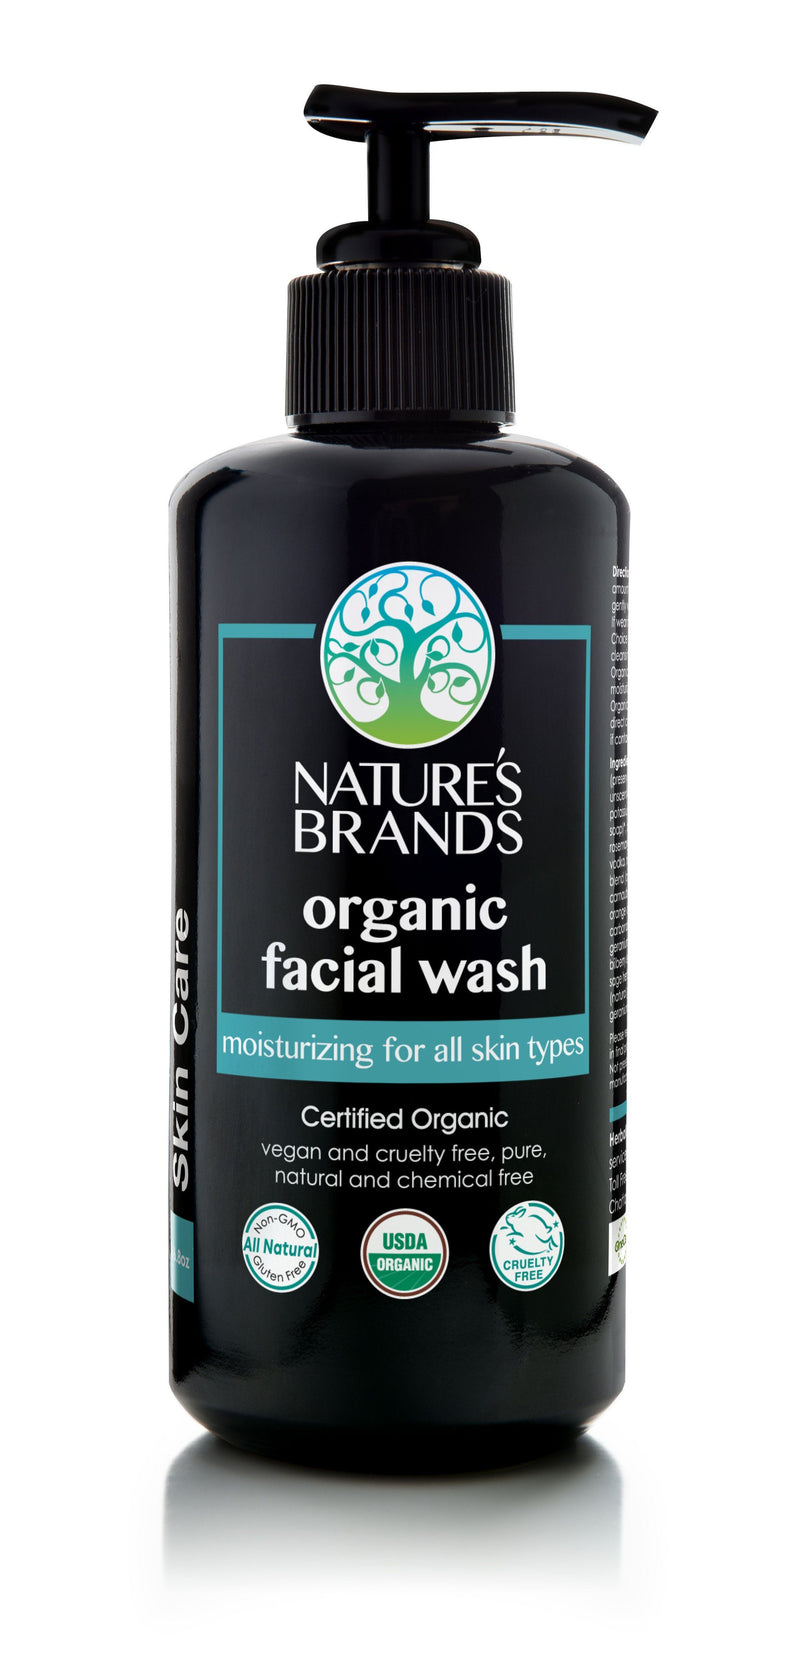 Herbal Choice Mari Organic Facial Wash, Moisturizing for All Skin Types - Herbal Choice Mari Organic Facial Wash, Moisturizing for All Skin Types - 6.8floz